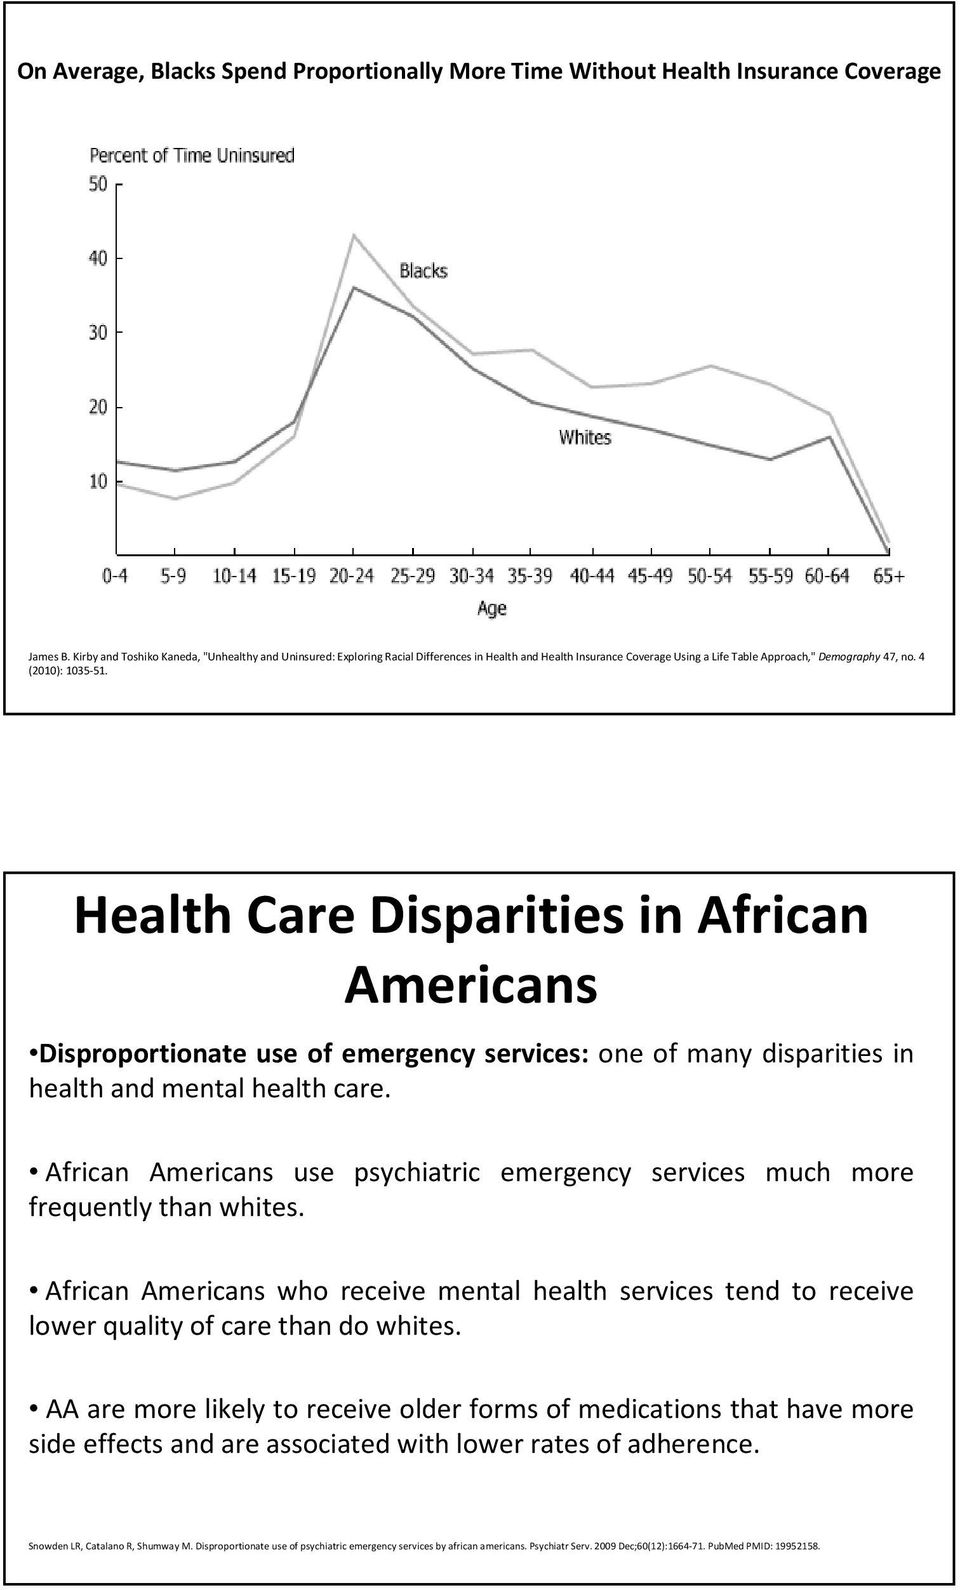 Health Care Disparities in African Americans Disproportionate use of emergency services: one of many disparities in health and mental health care.